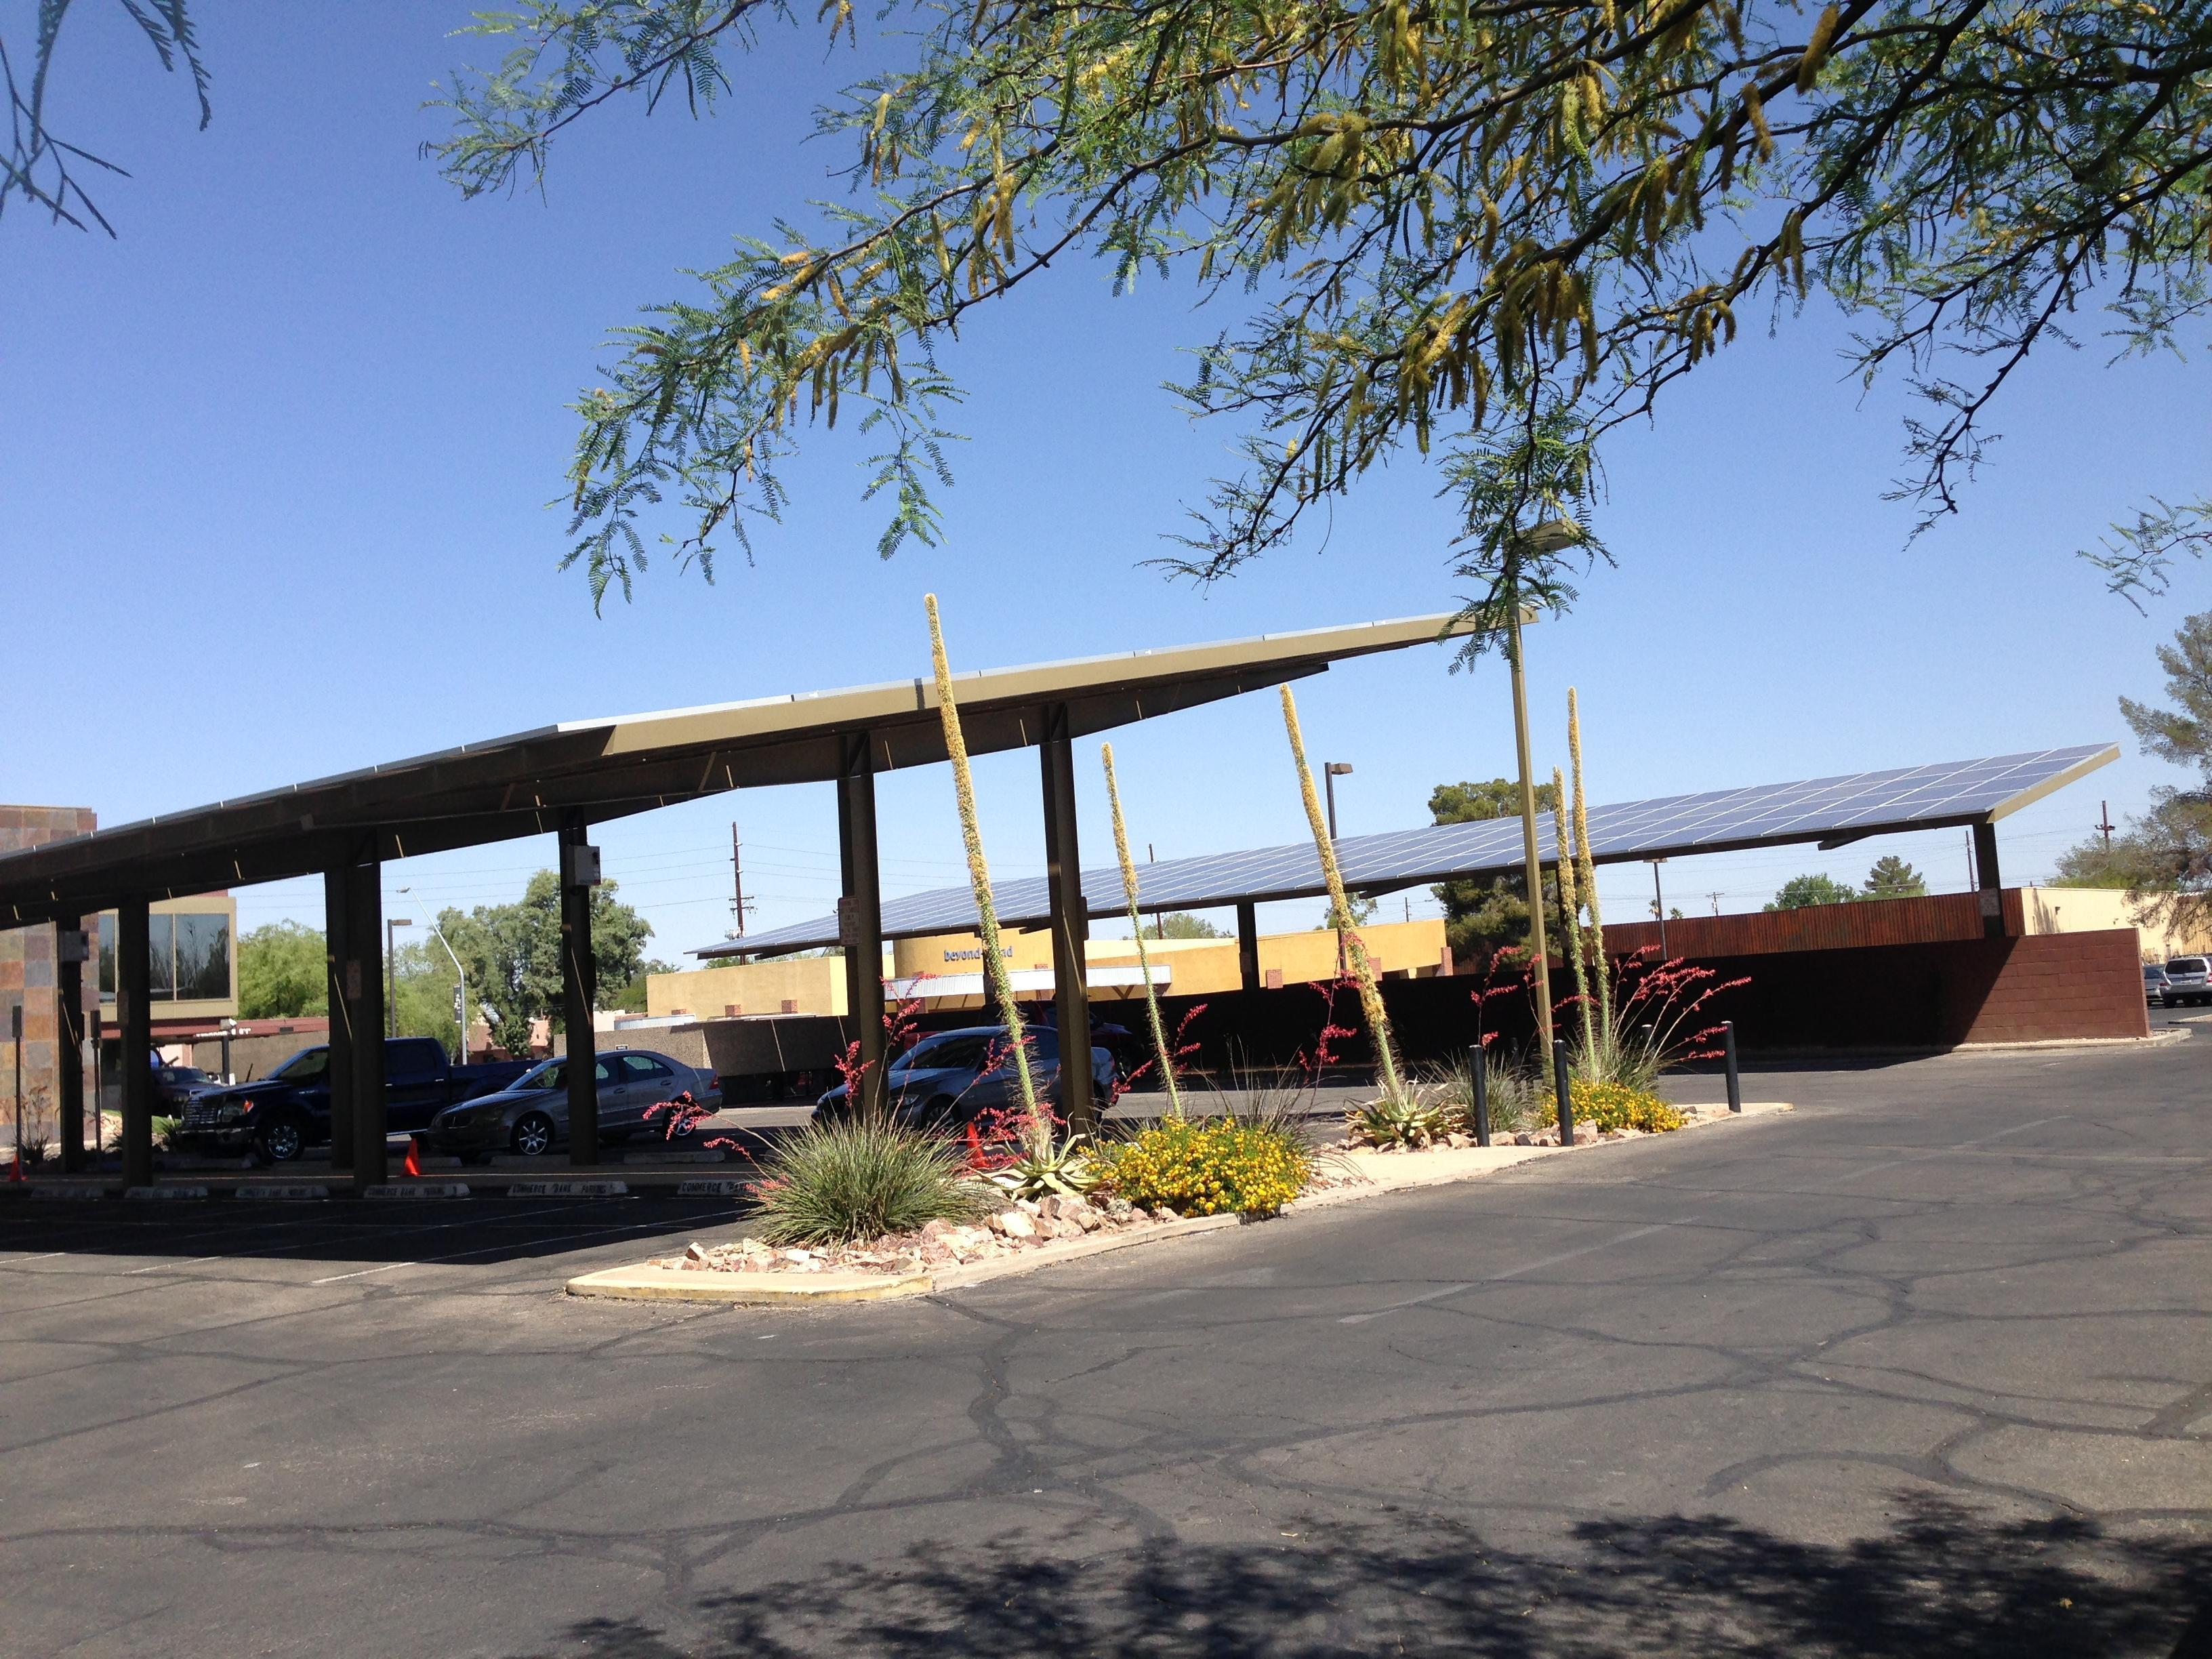 Integrated 100kW solar shade canopy and roof system for Town West Realty - Tucson, AZ.